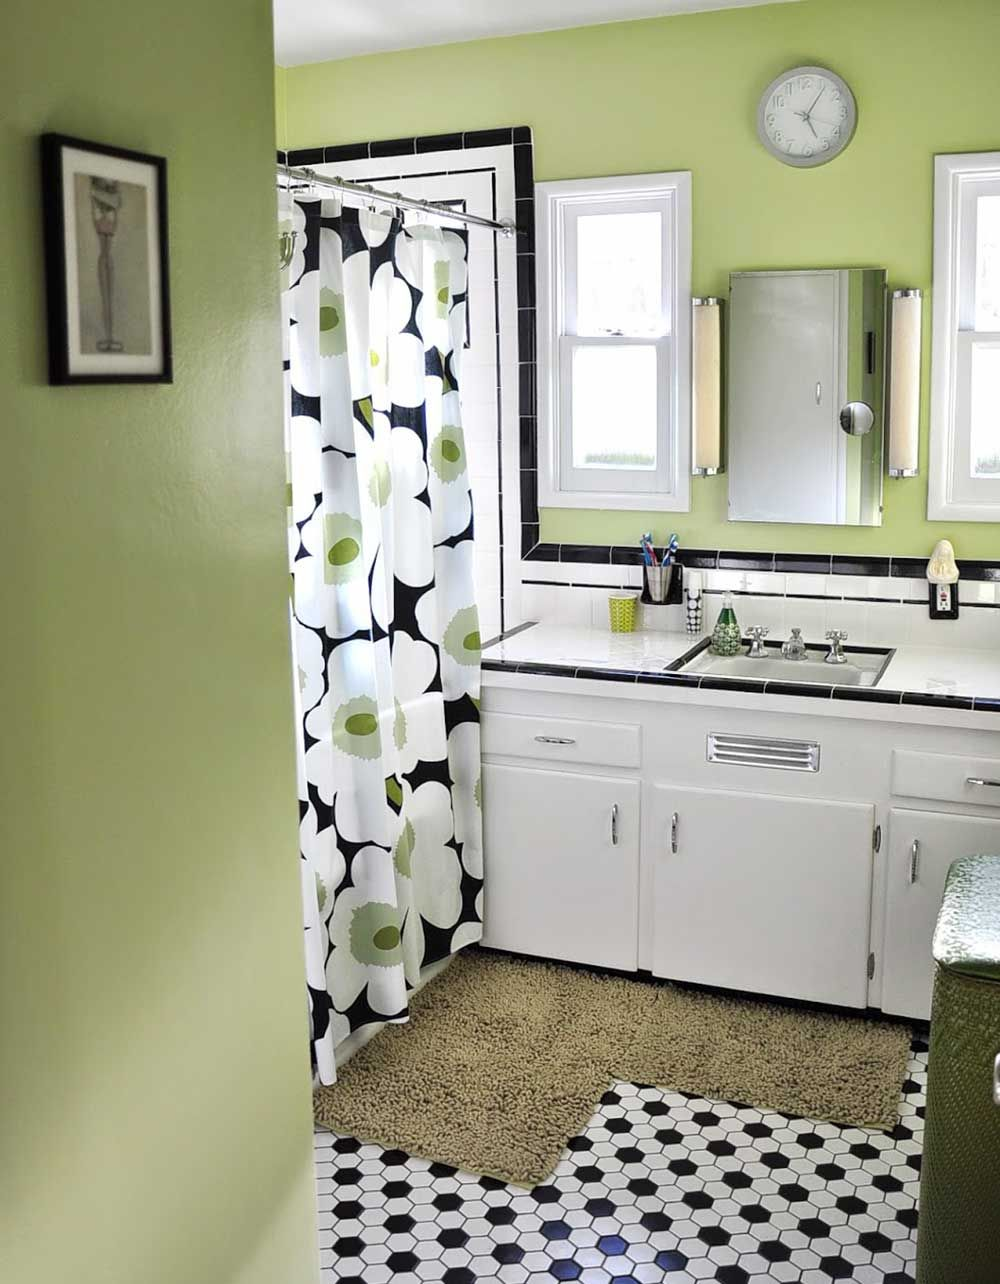 Black and white tile bathrooms done 6 different ways What s Eye